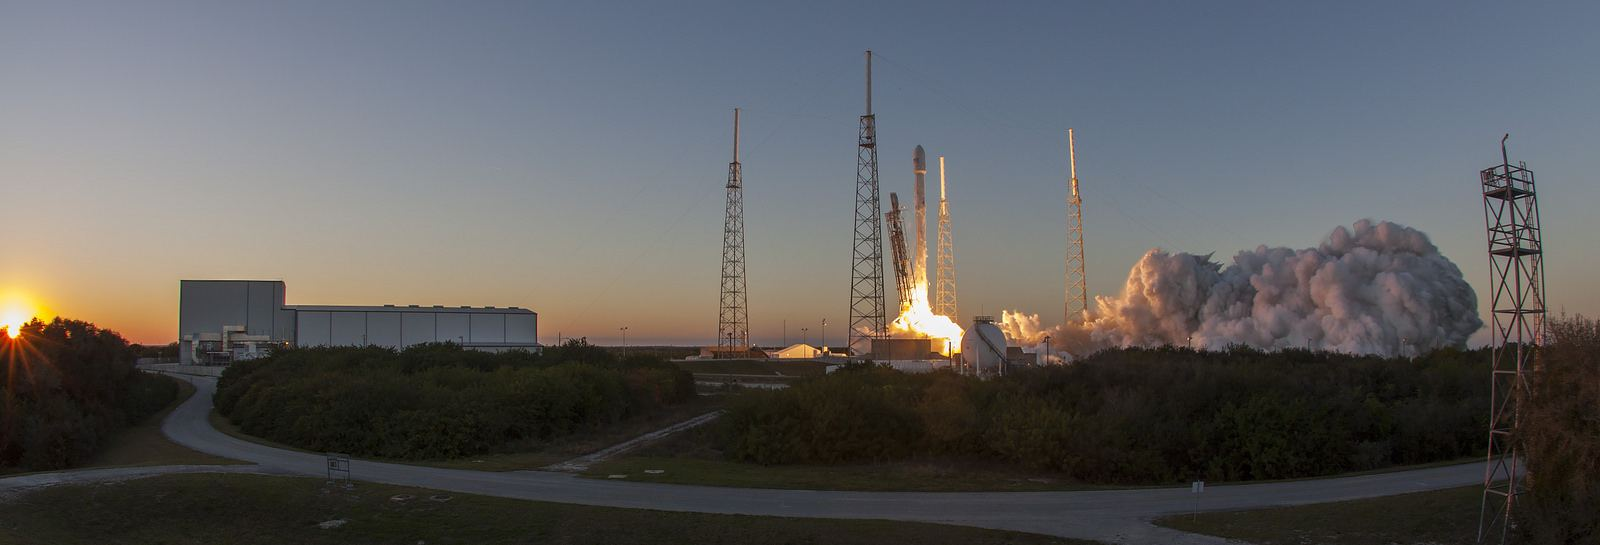 spacex2 Falcon 9 lifted off from SpaceX Launch Complex